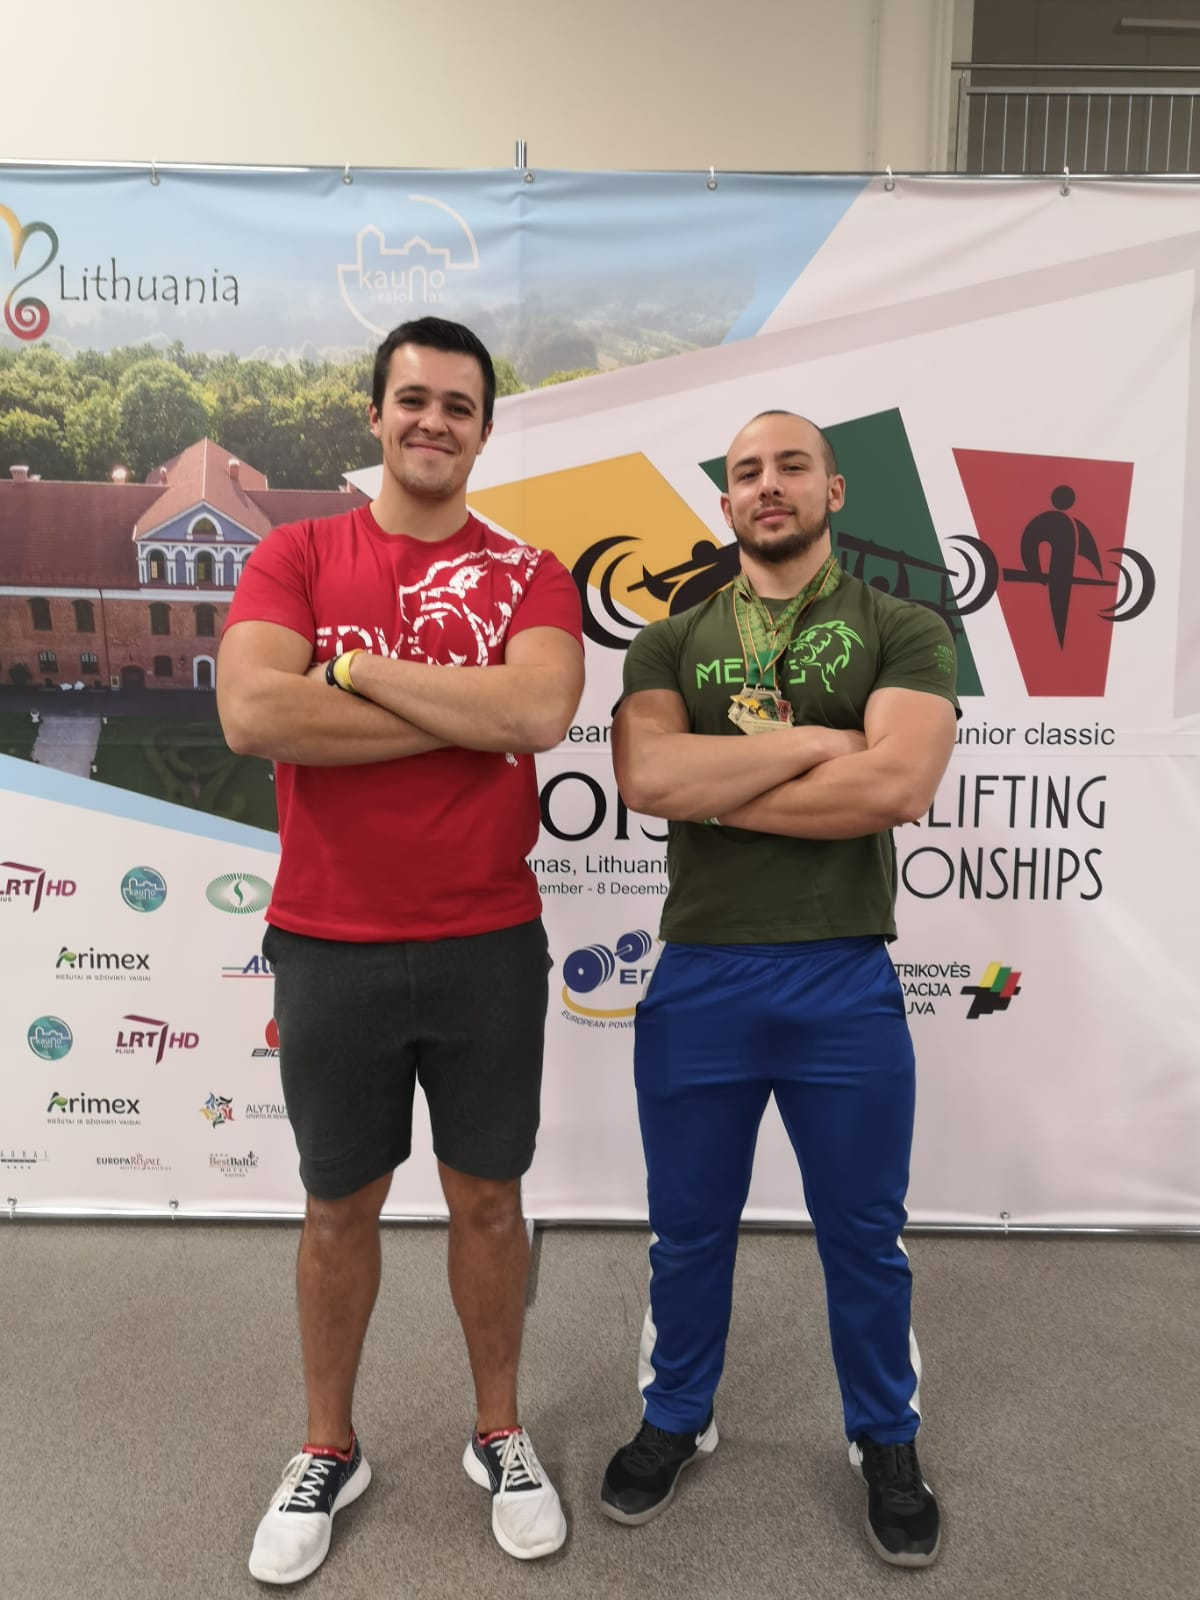 Youssuf El Adlani & Florian Roiron from Best Of The Lift @IPF European Championships